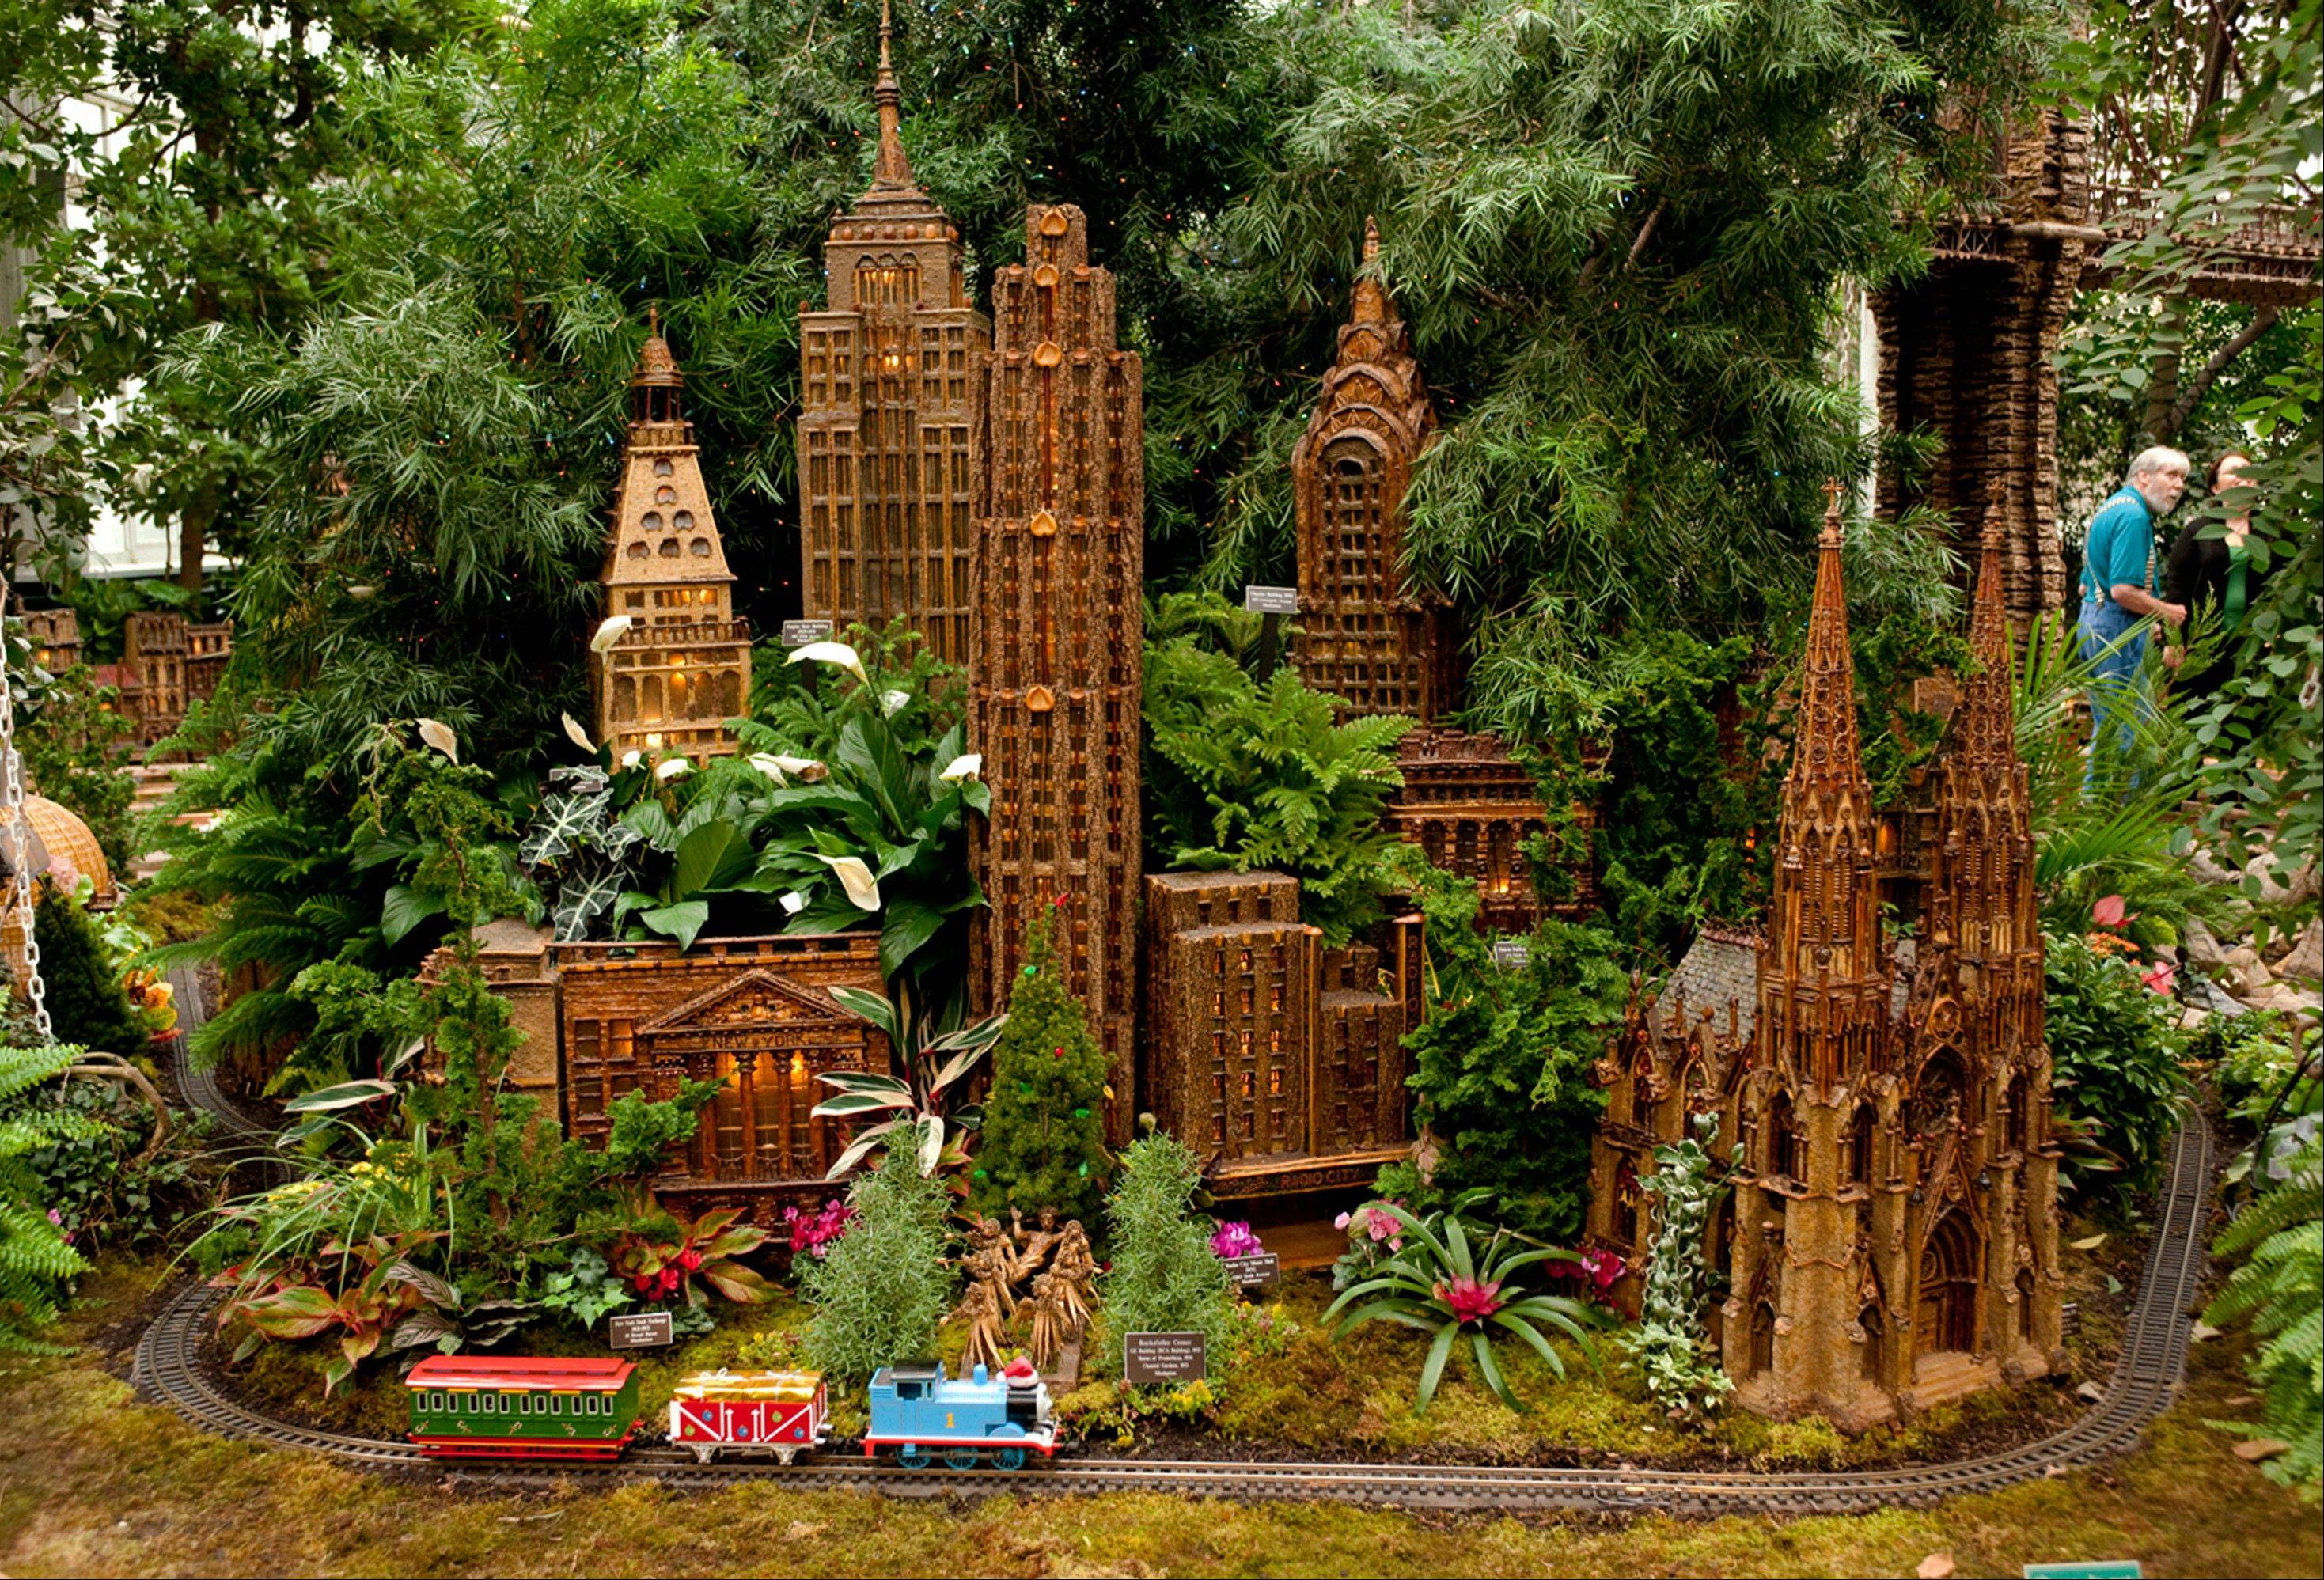 At the annual holiday train show at the New York Botanical Garden, model trains wind past 140 buildings depicting New York City, including landmarks like the original Yankee Stadium, St. Patrick's Cathedral and the Brooklyn Bridge.